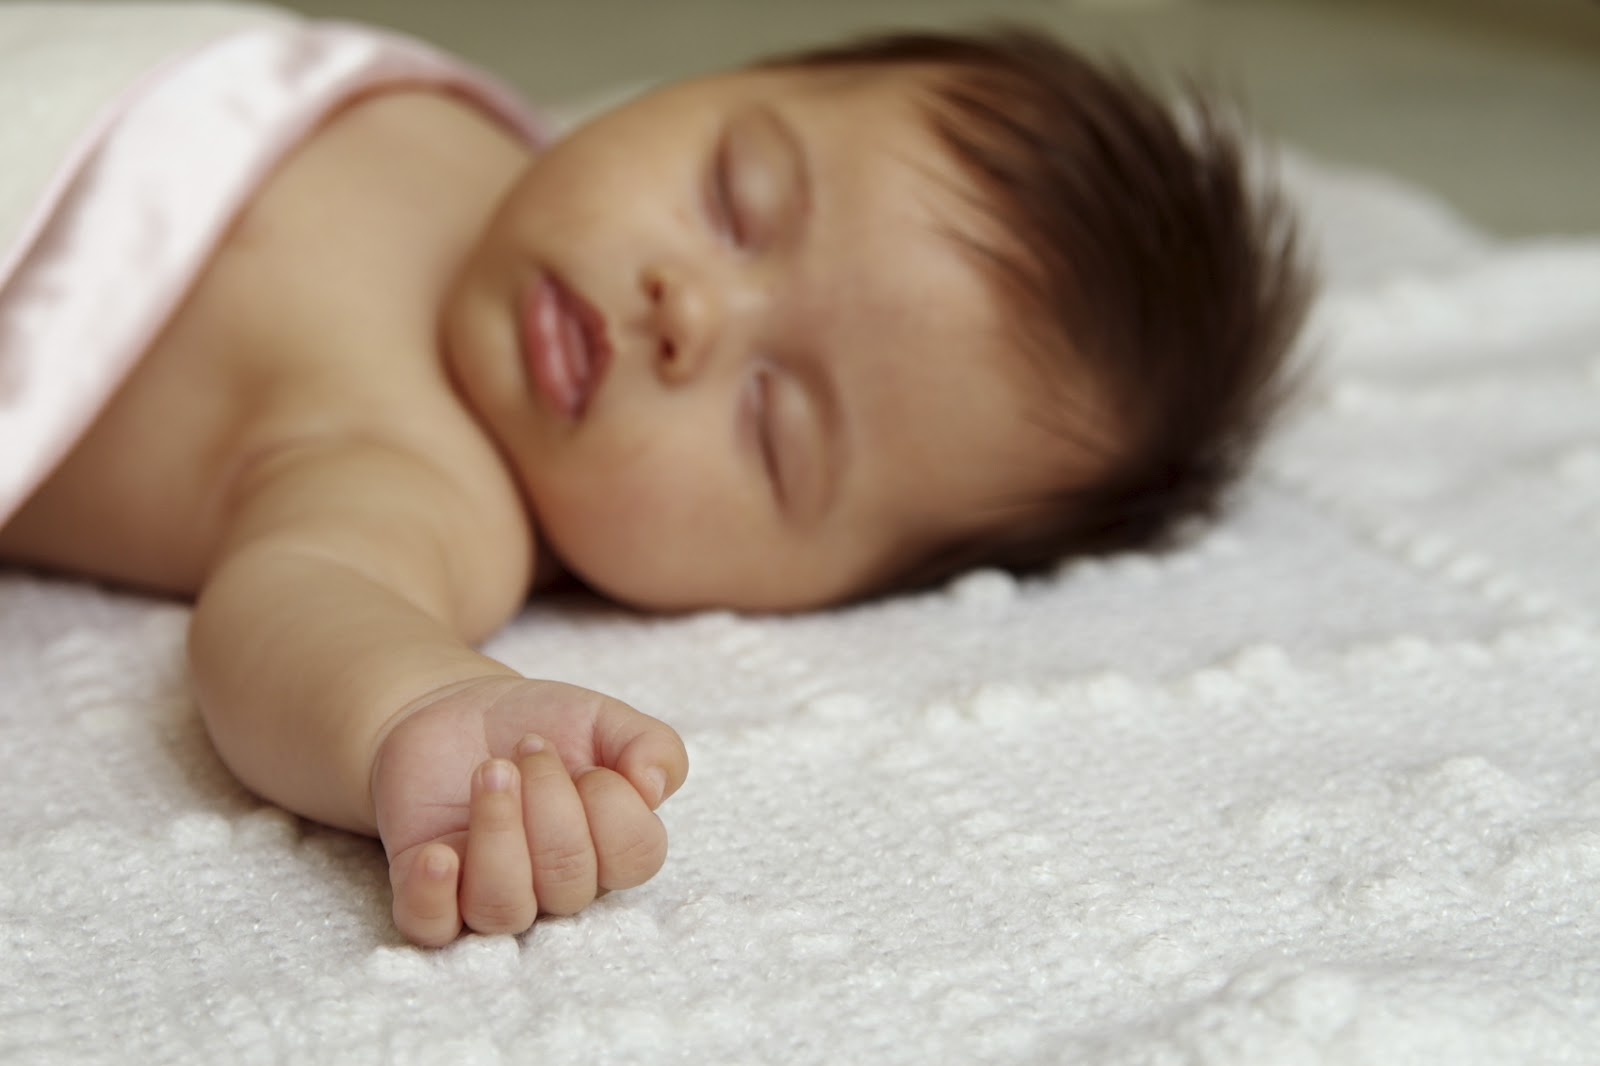 Cute Babies Sleeping Images: BBcuPia: Baby Cute Sleeping